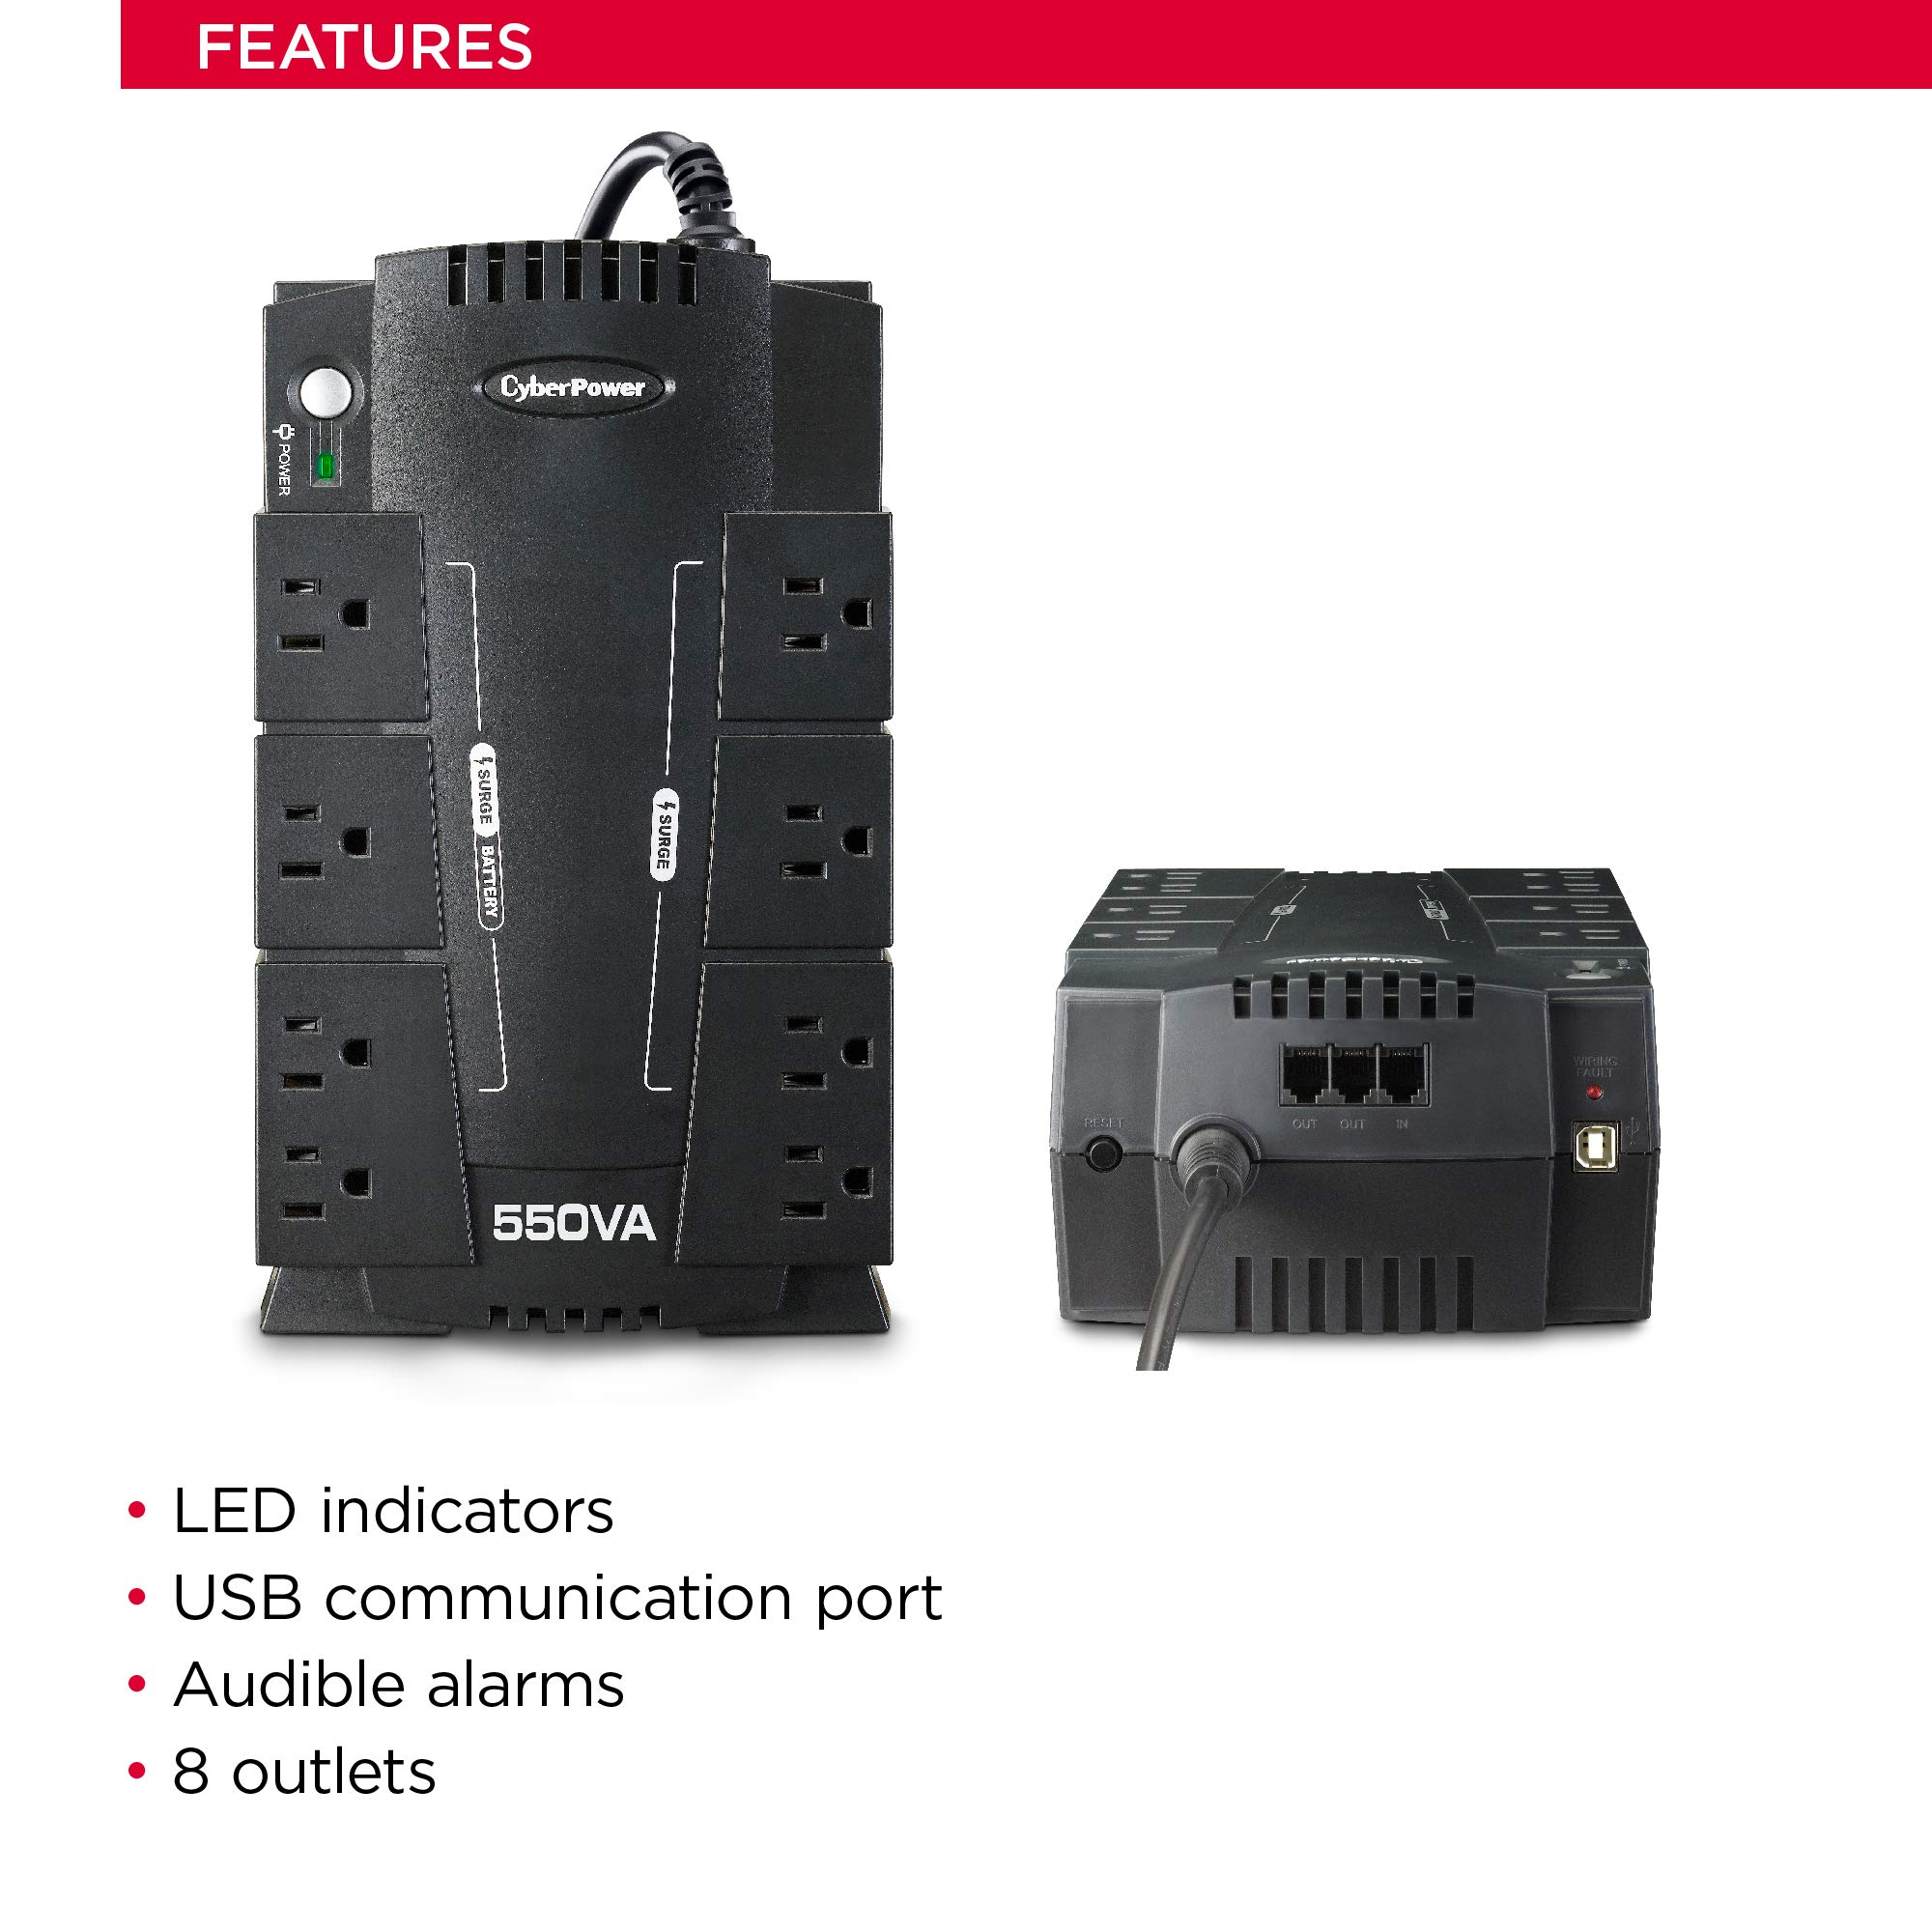 CyberPower CP550SLG Standby UPS System, 550VA/330W, 8 Outlets, Compact by CyberPower (Image #3)